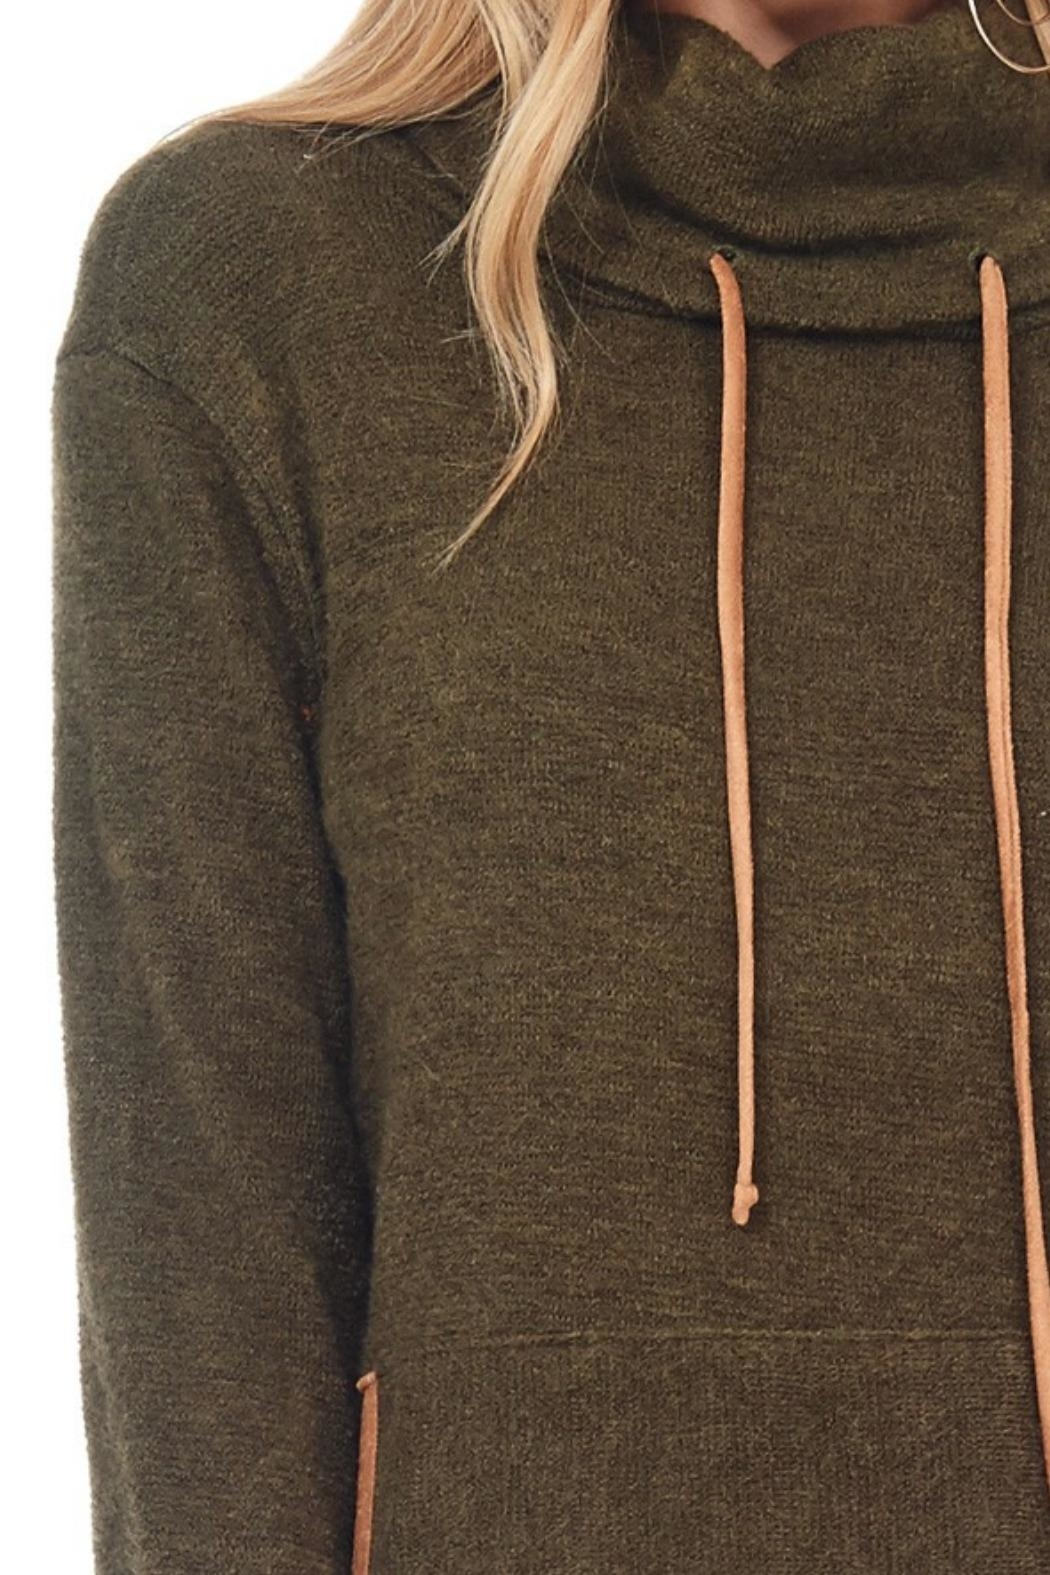 Hailey & Co. Highneck Sweater Tunic - Back Cropped Image